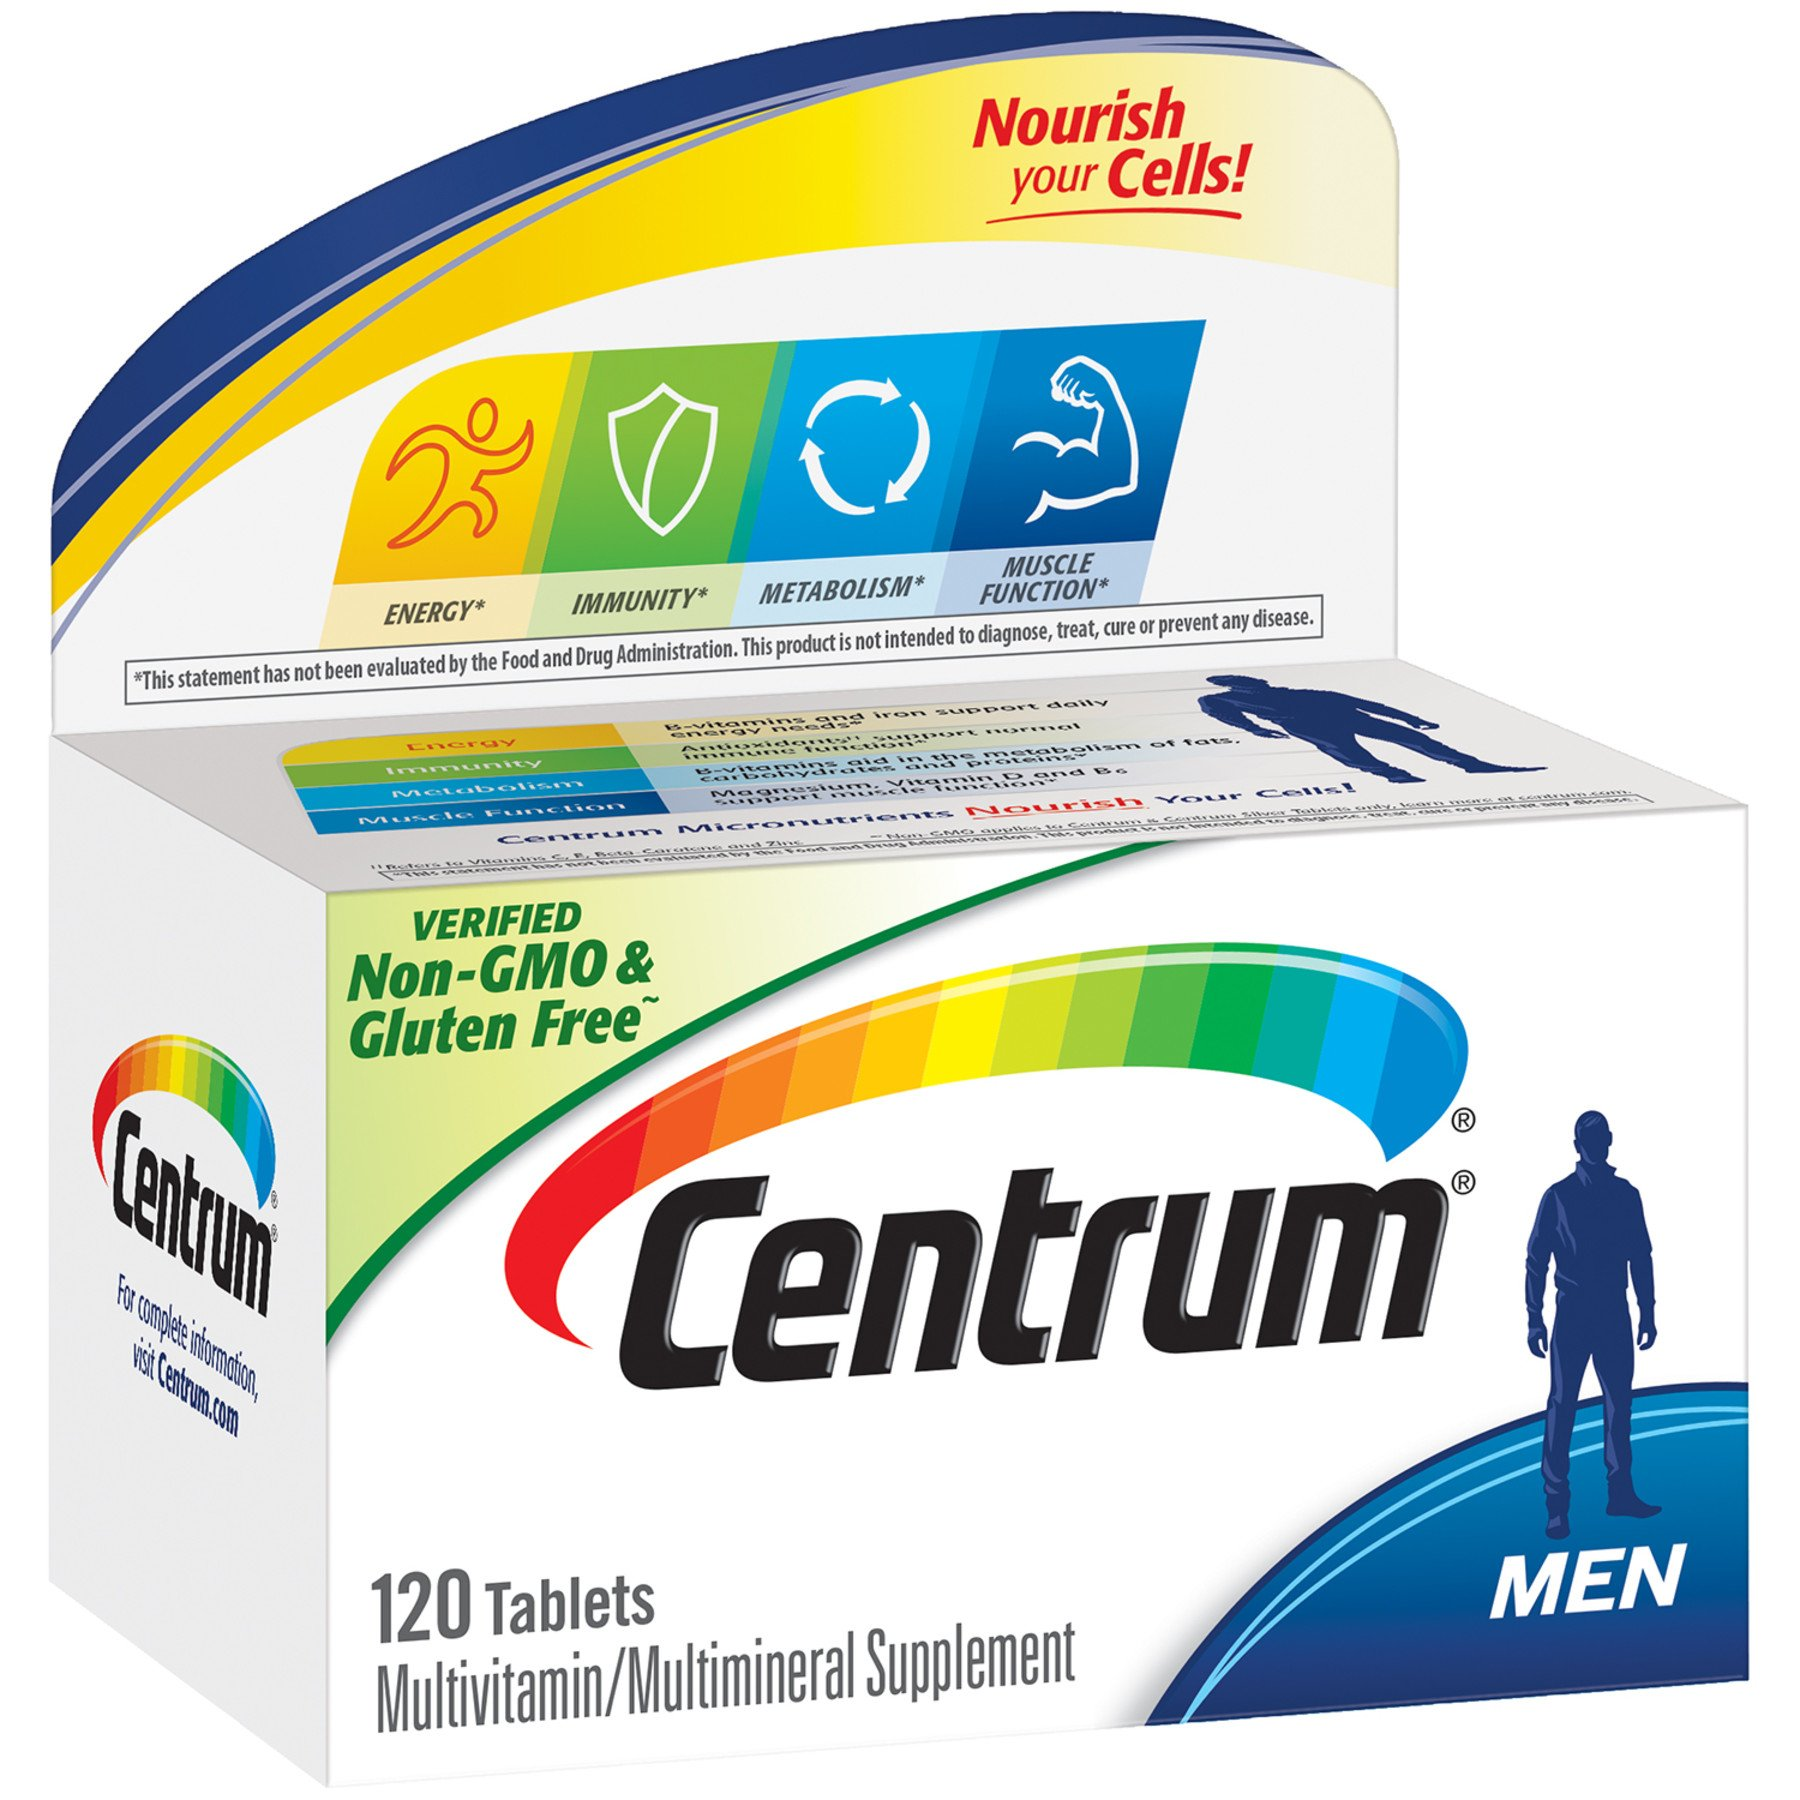 Centrum Multivitamin Multimineral Supplement Personalized For Men Tablets Shop Multivitamins At H E B